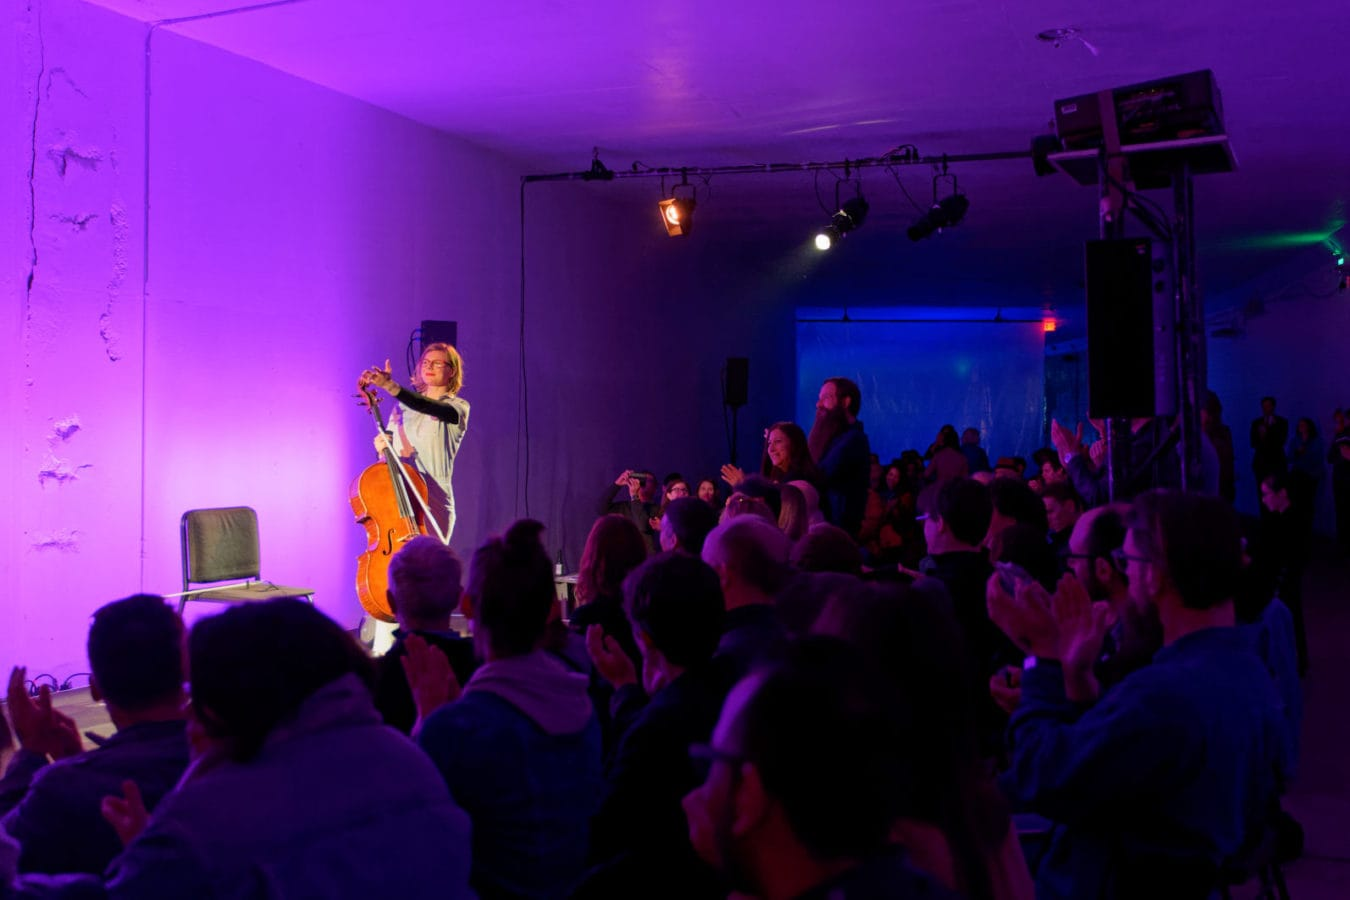 Amanda Gookin's Forward Music Project at the Direct Current Festival on March 29. Photo by Anu Dev.